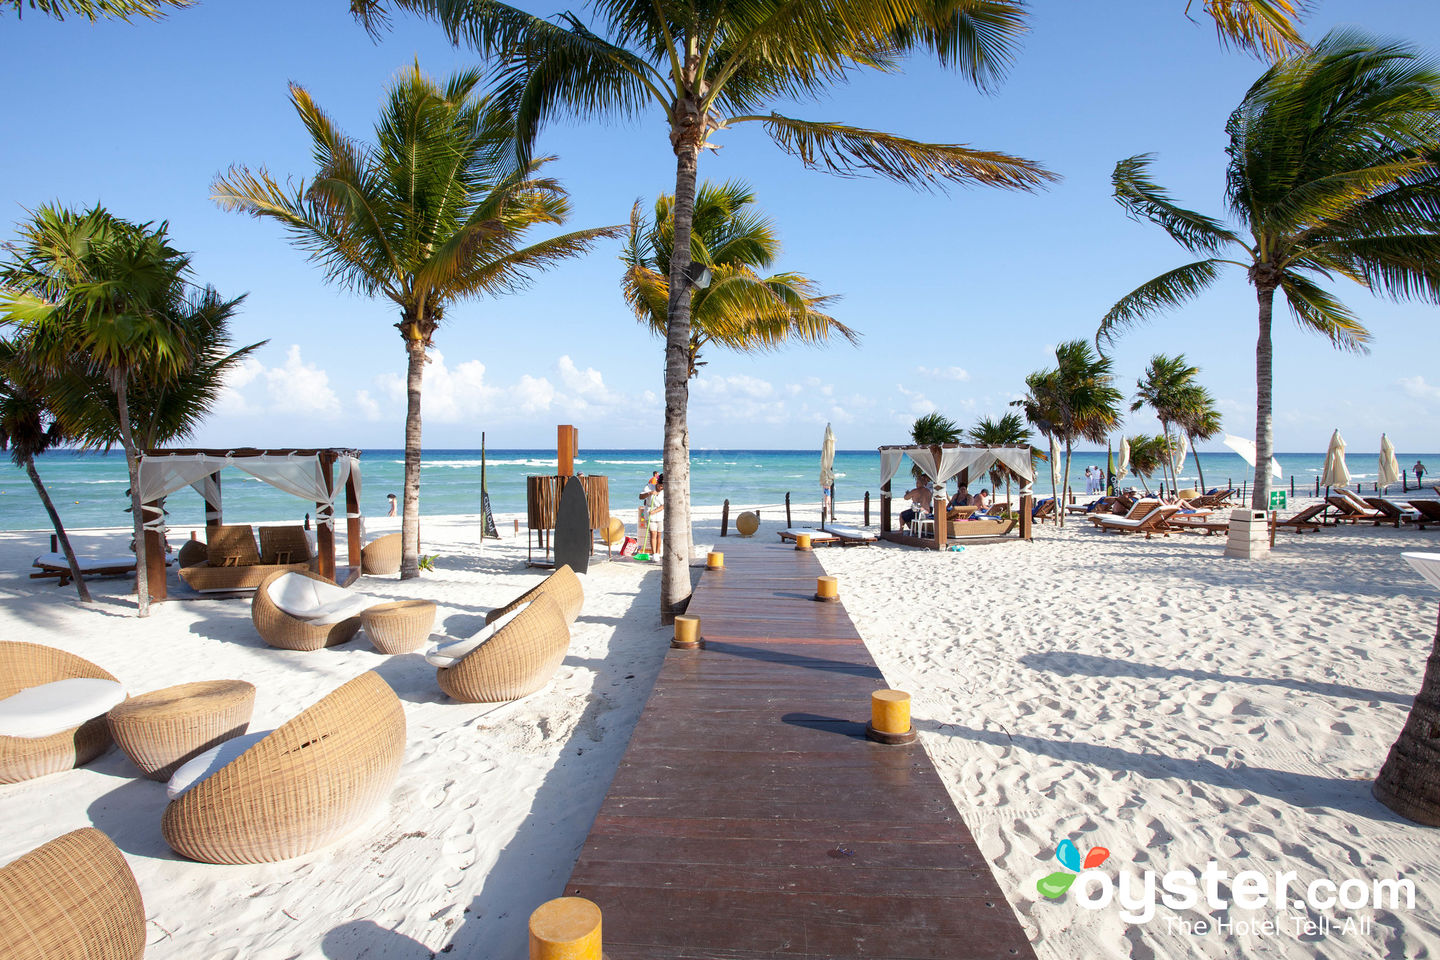 AwardWinning Isla Mujeres Hotels  Resorts 2019